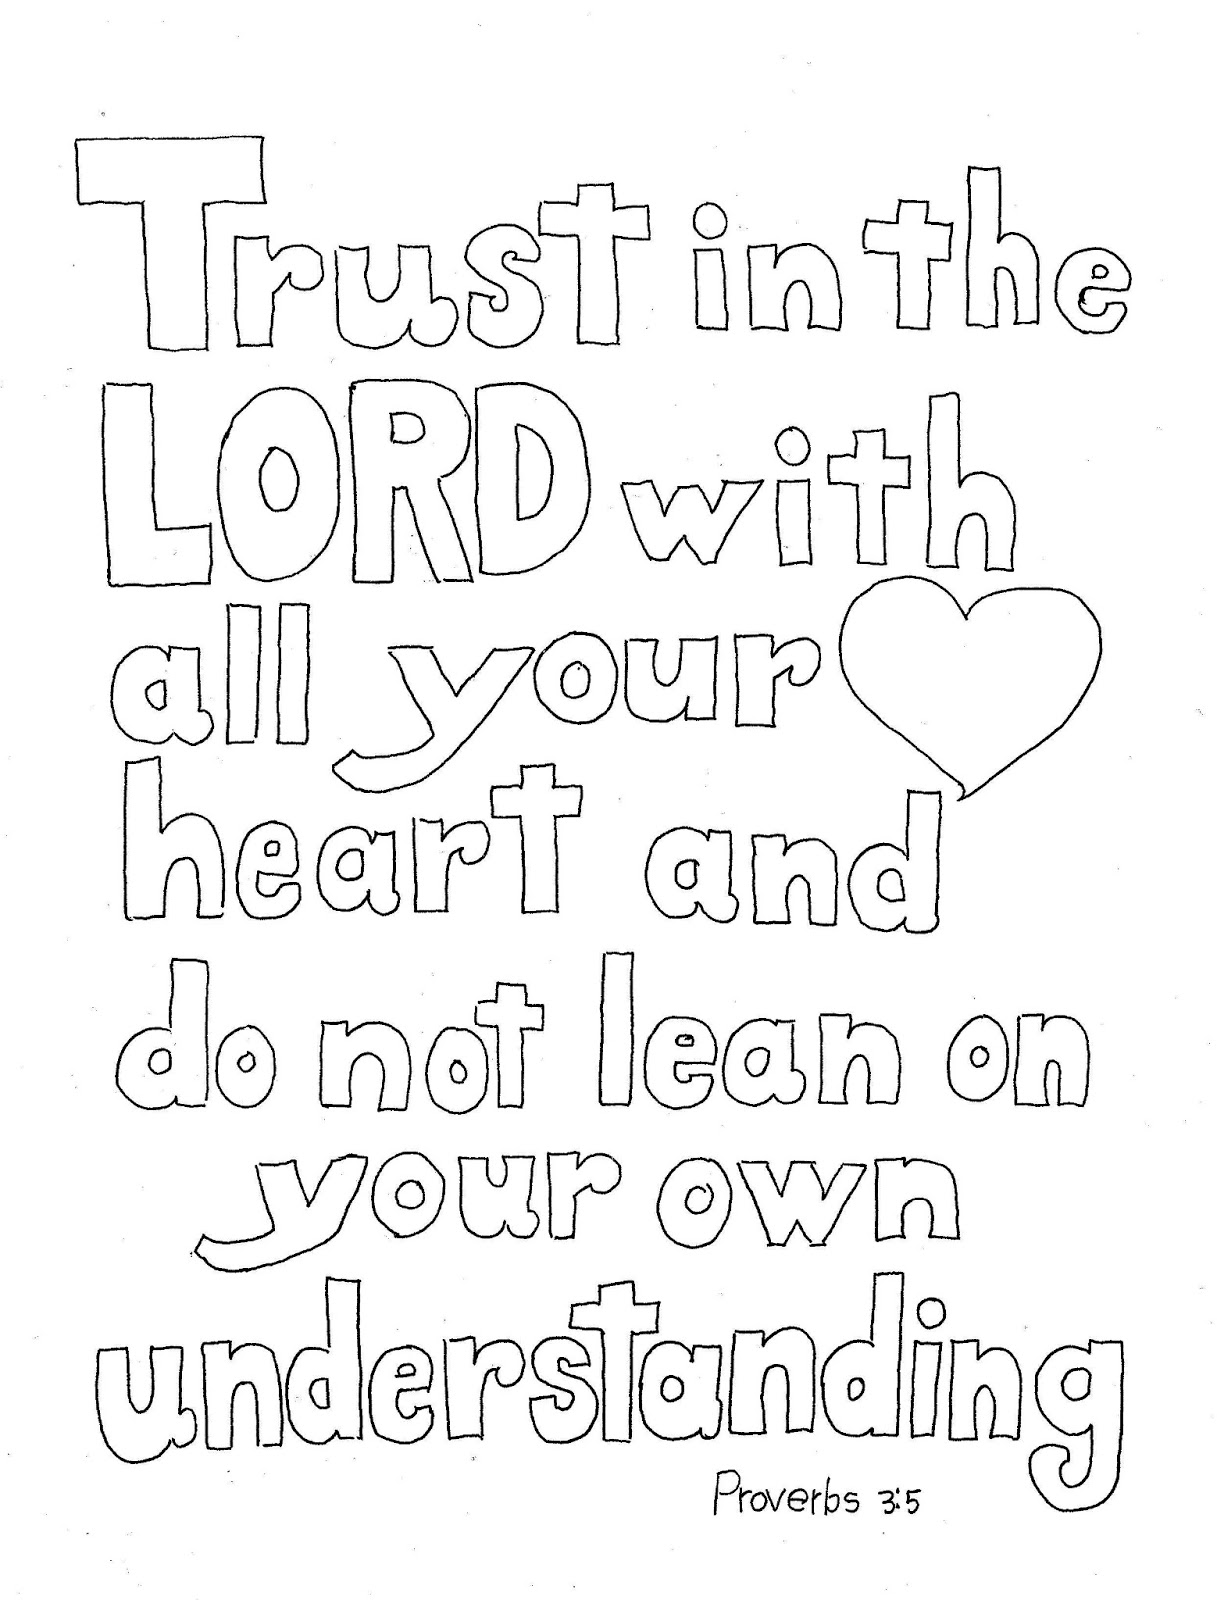 Download This Free Printable Coloring Sheet Based On Psalm